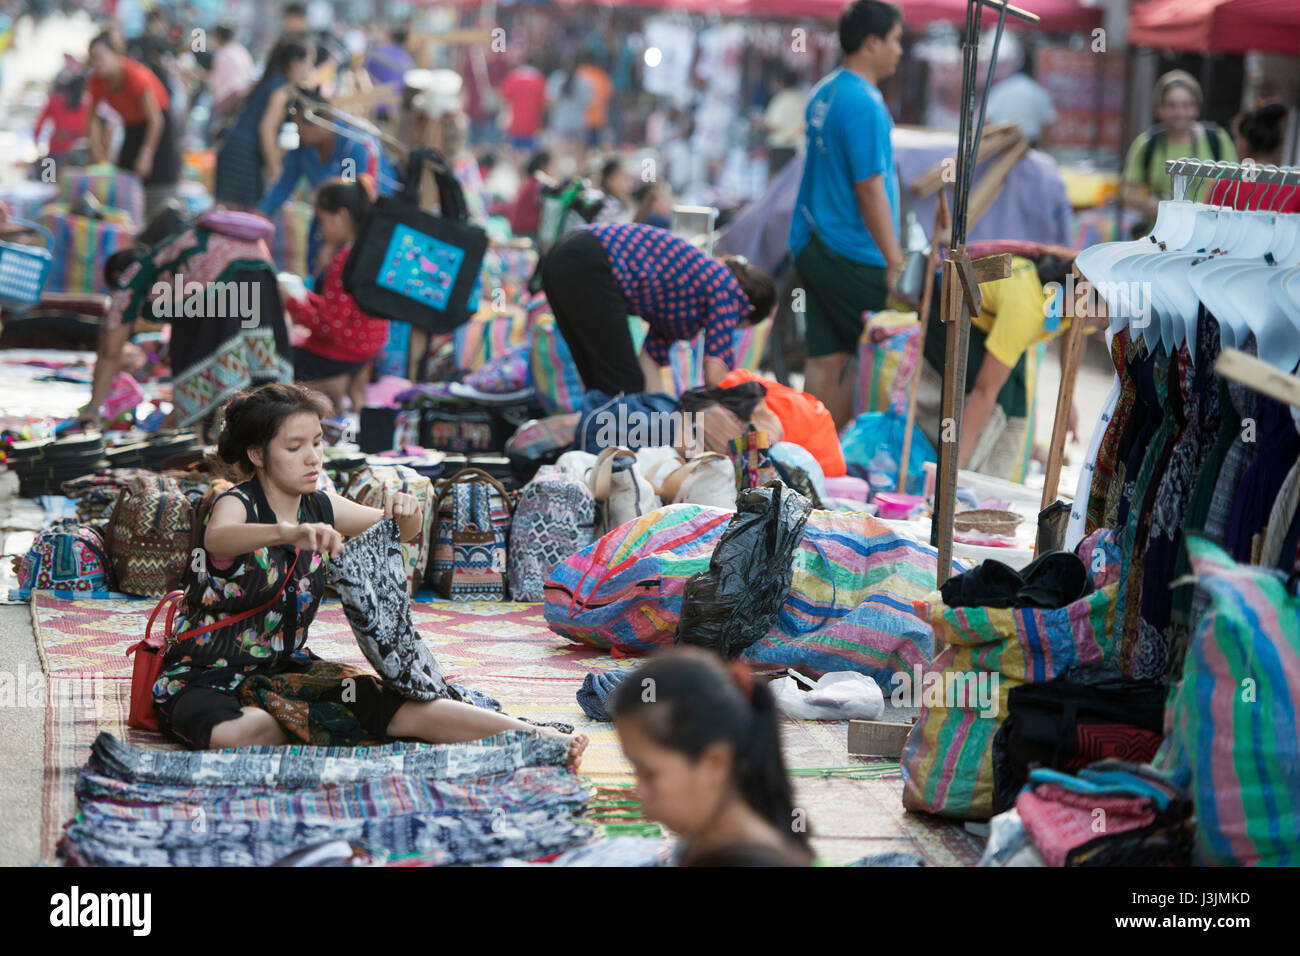 the nightmarket in the town of Luang Prabang in the north of Laos in Southeastasia. - Stock Image